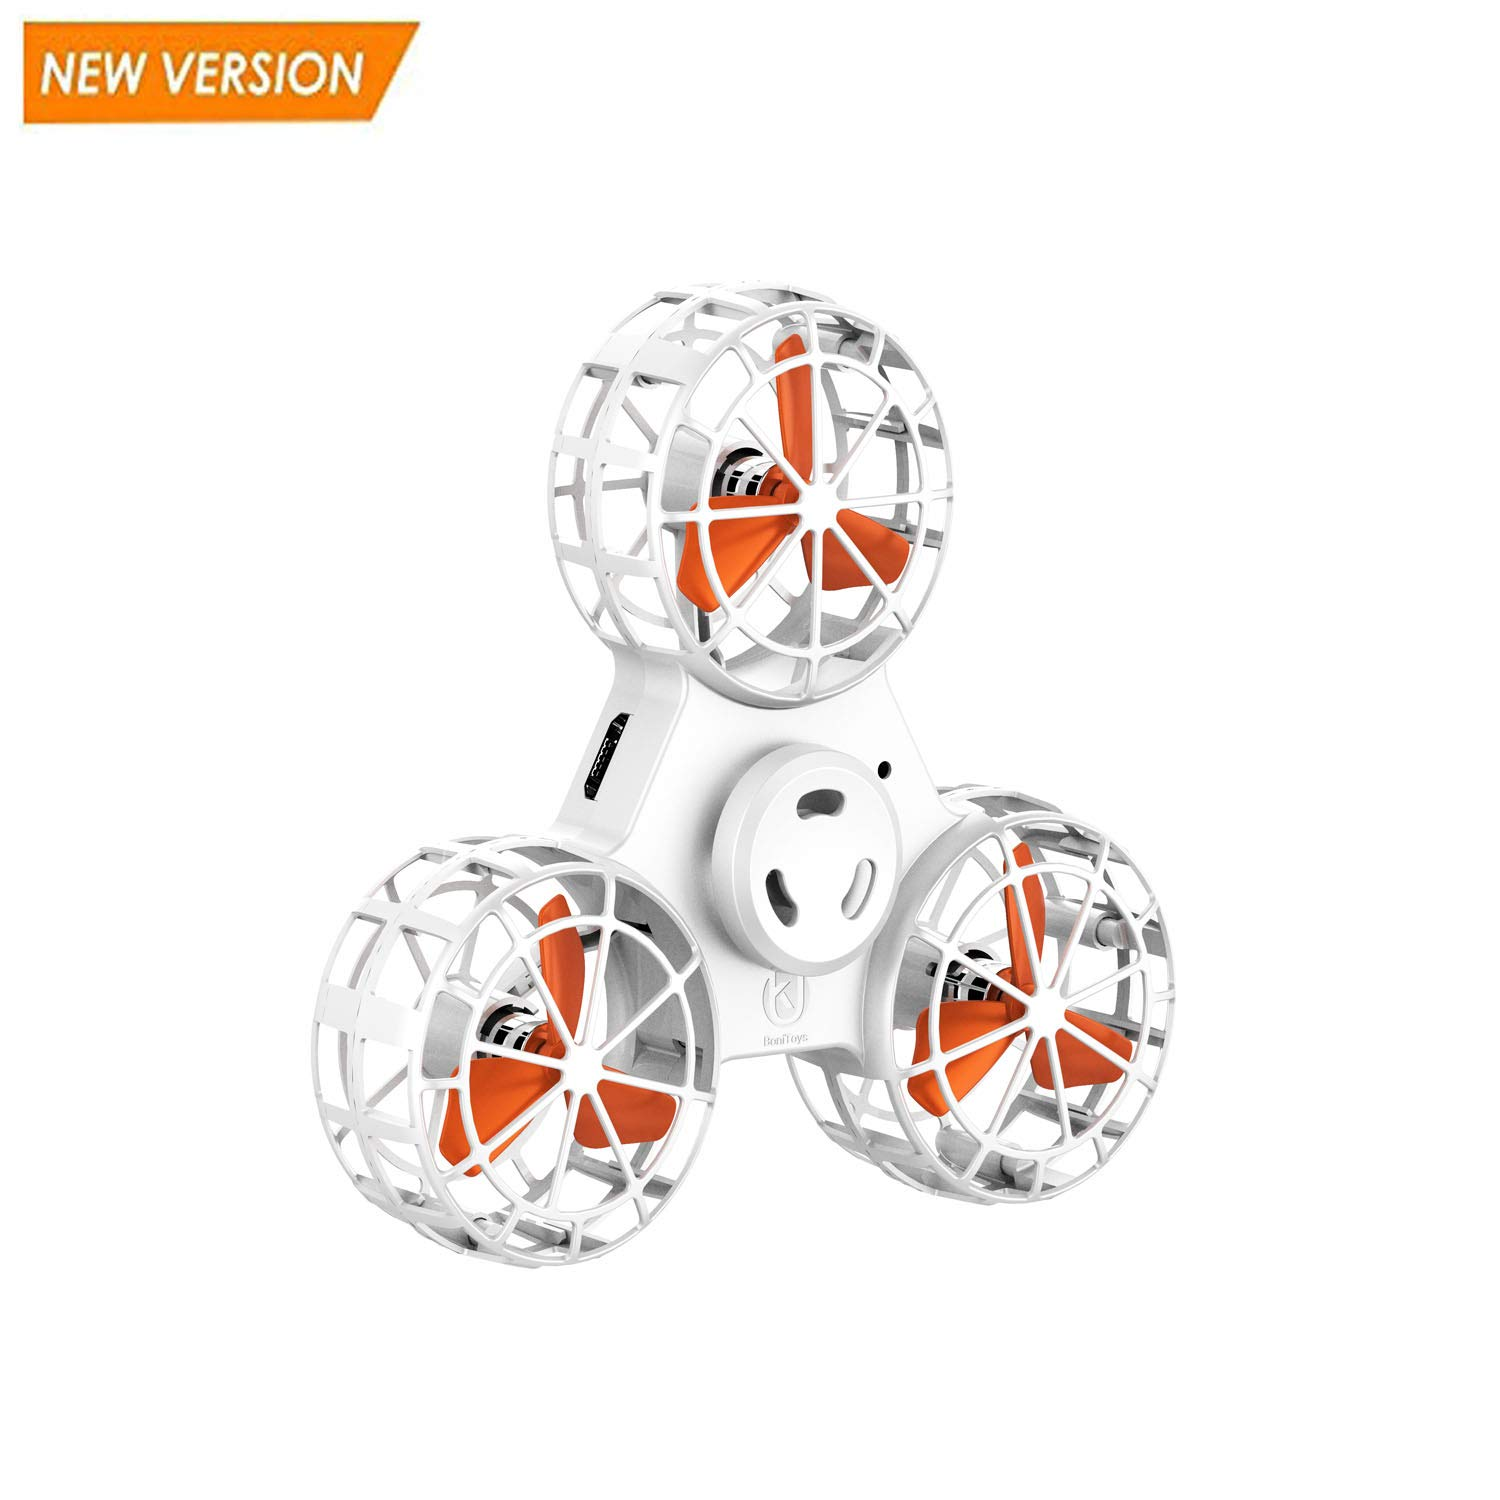 EliveBuy 【Upgrade Version】 Anti-Anxiety Fidget Toy, Flying Fidget Spinner, Mini Drone with 6 LED Pattern, USB Rechargeable, Flying Toy Gift for Kids by EliveBuy (Image #1)